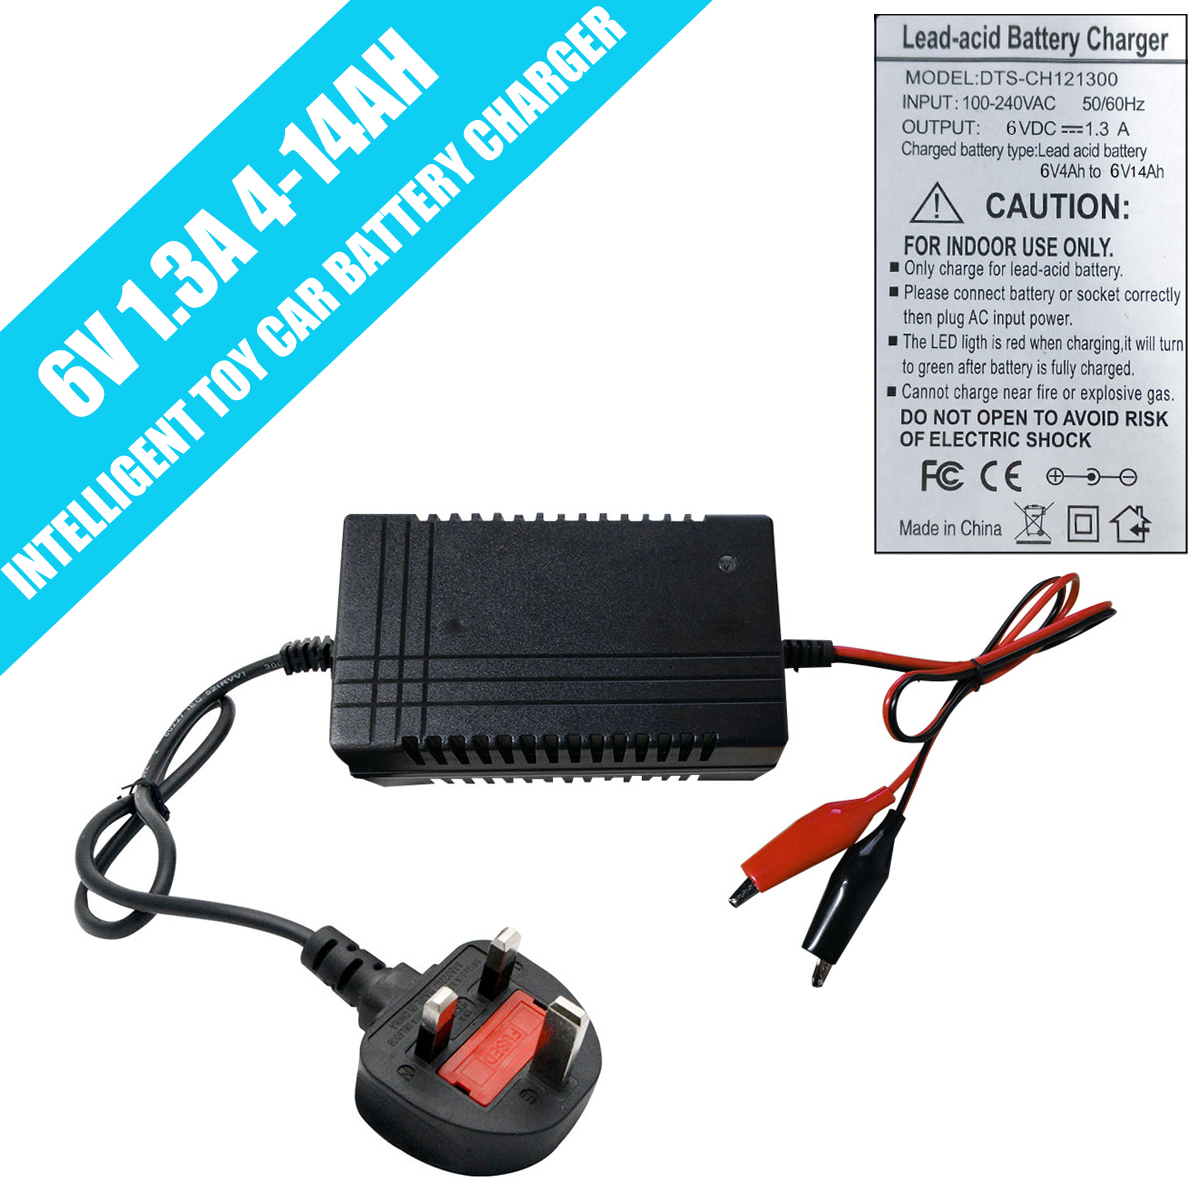 Toy Car Battery Charger Combo 6v 45ah 6 Volt Mains 2v 12v Sealed Leadacid Sla Ebay If You Have Any Inquiry Please Contact Us Through Seller Message Or Email With Your Name Id Item Number Before Bidding